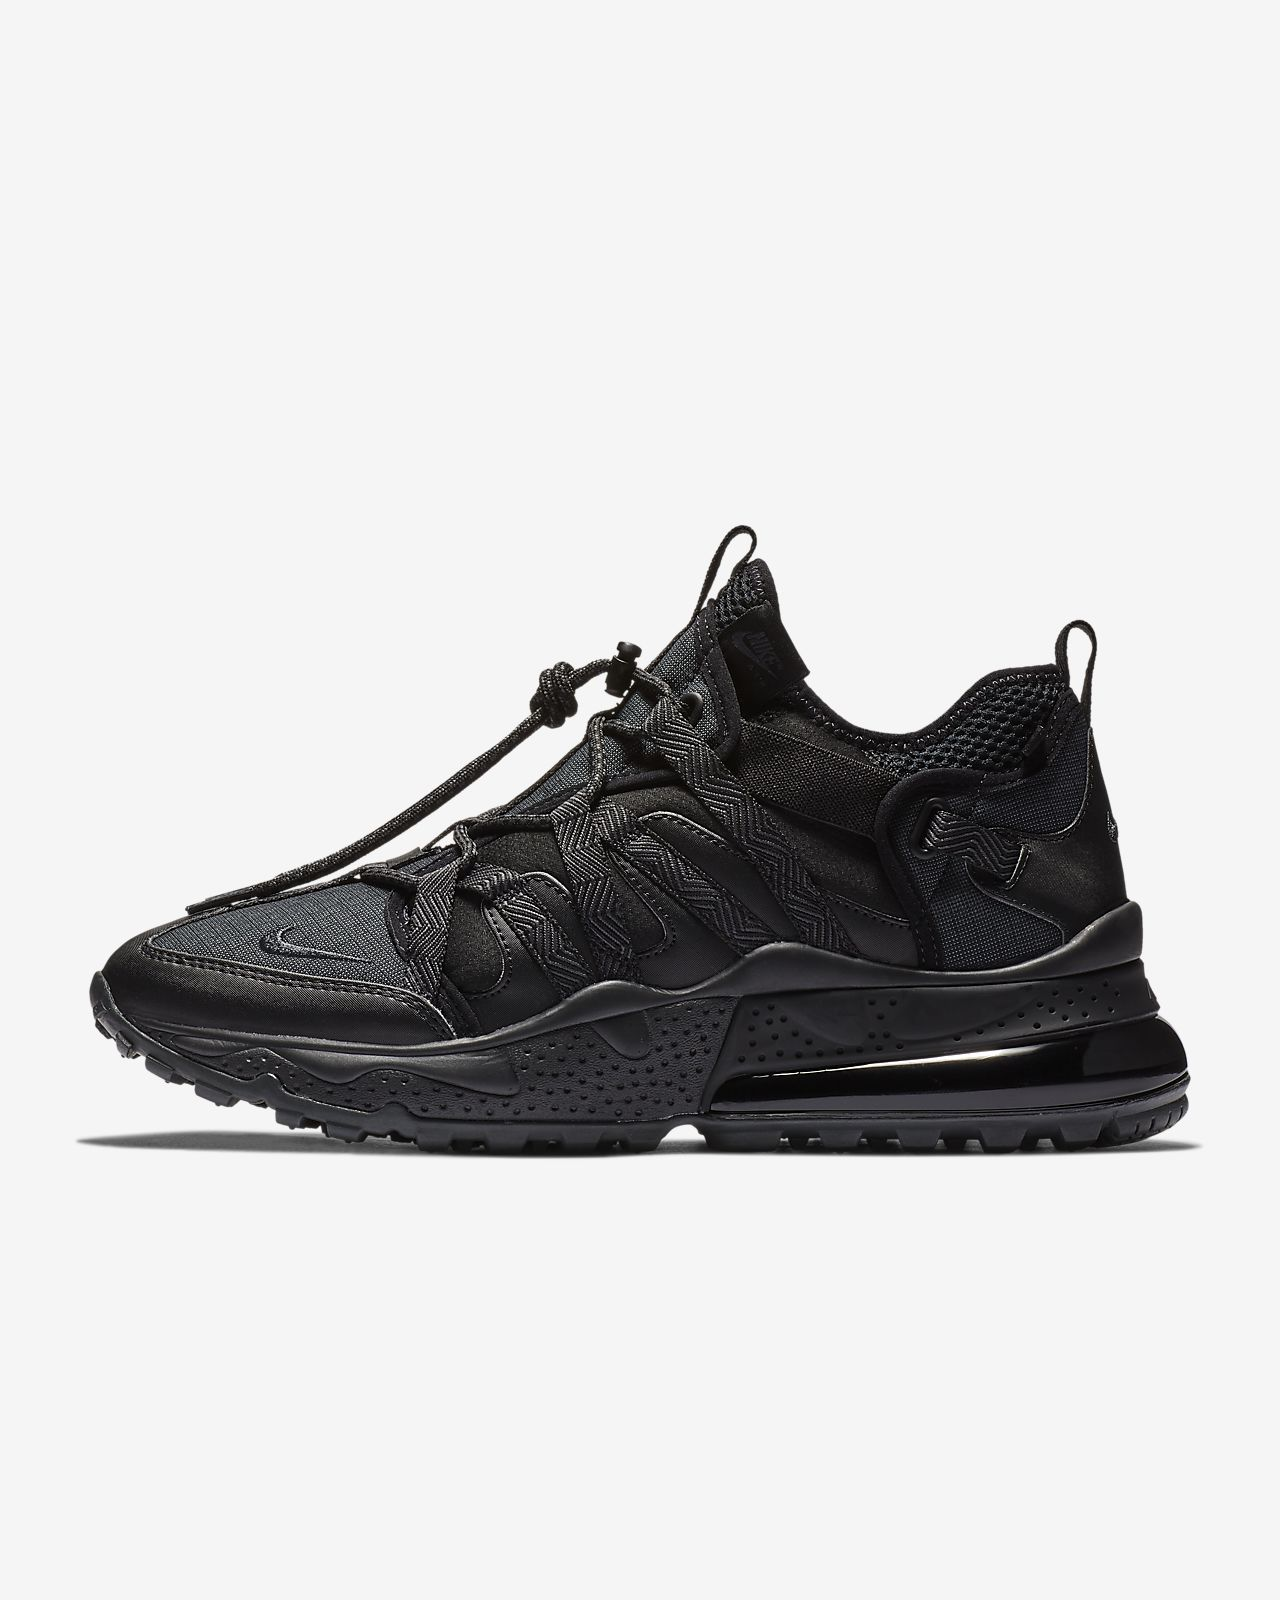 145089dd2e Nike Air Max 270 Bowfin Men's Shoe. Nike.com